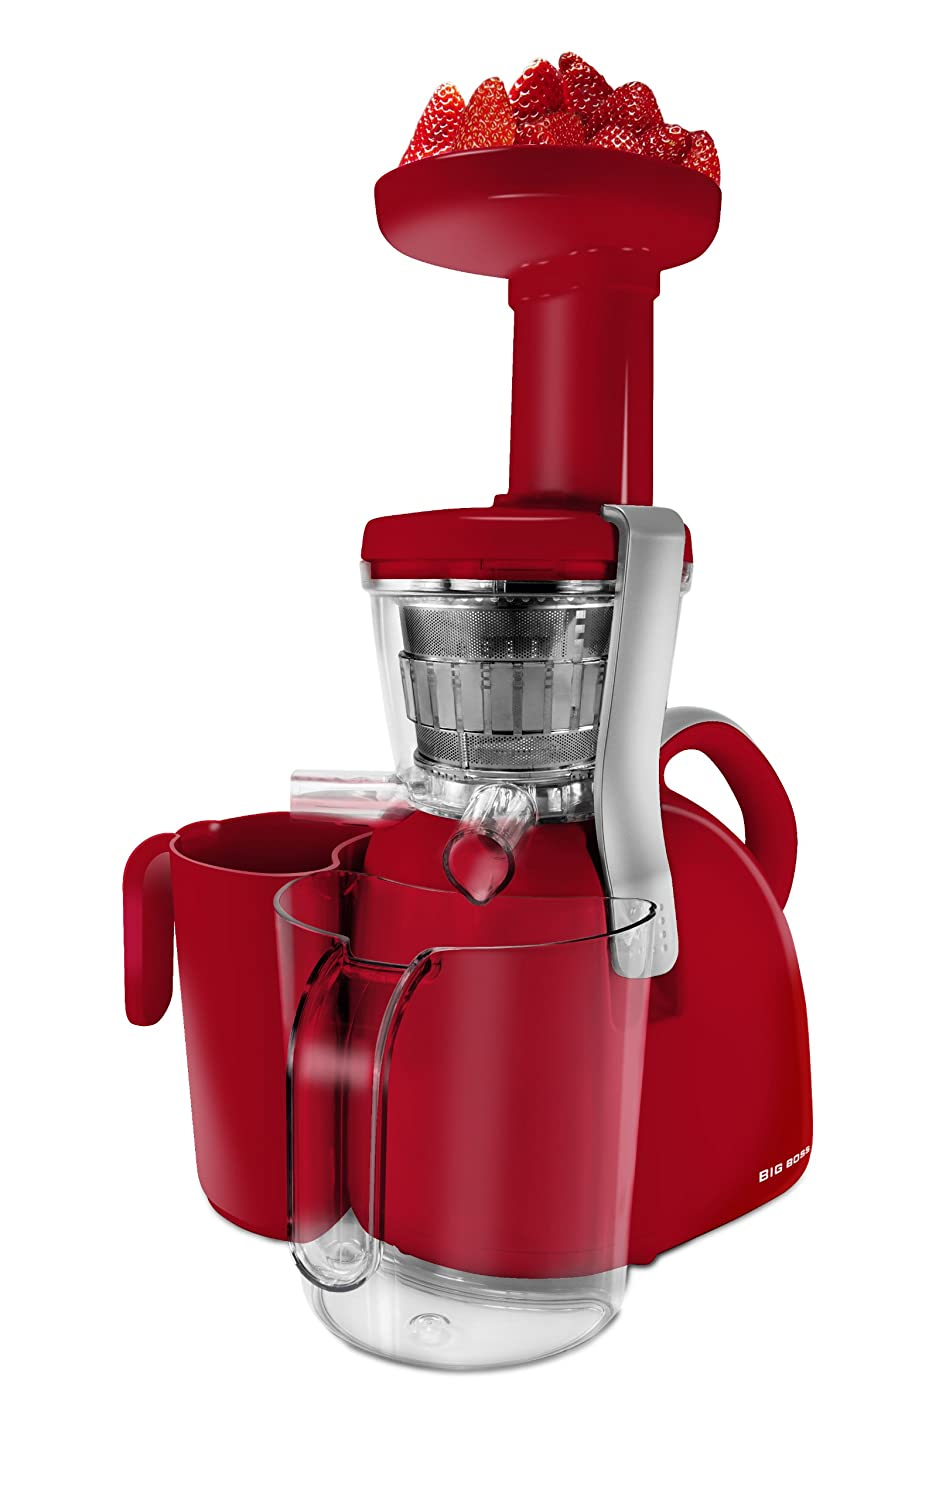 Big Boss 9176 Nutritionally Beneficial Slow Juicer, Black E.Mishan & Sons Inc.